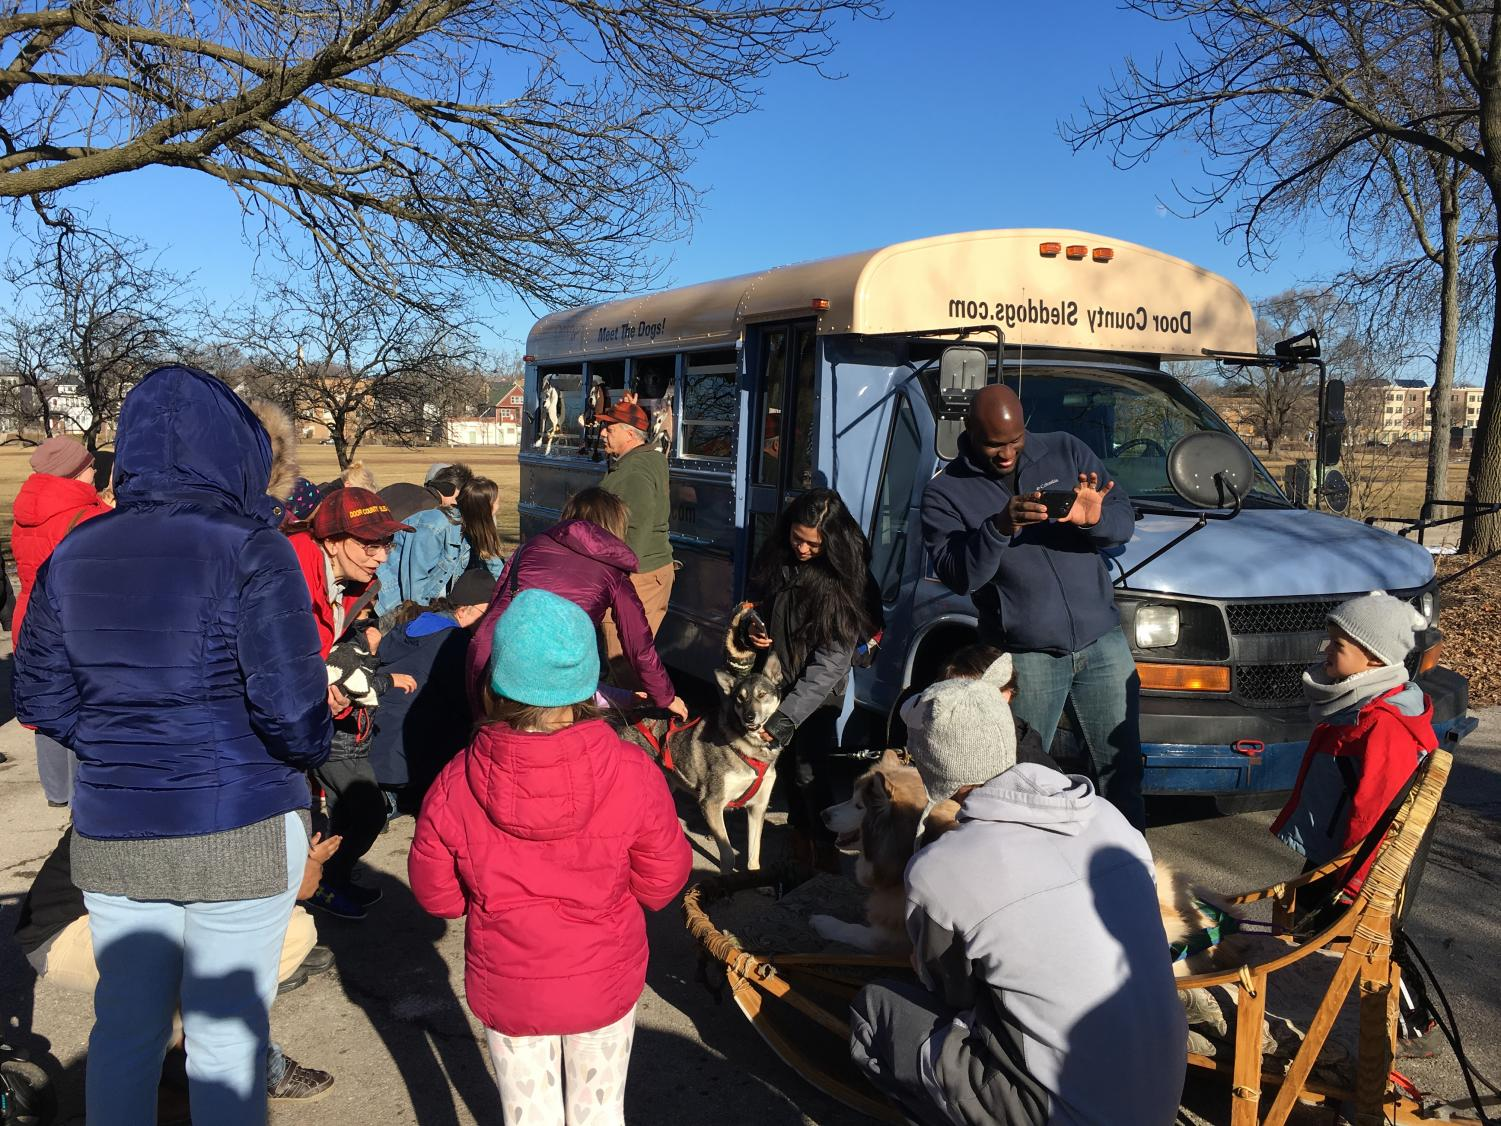 People congregate around the Sled Dogs of Door County and their vehicle at a